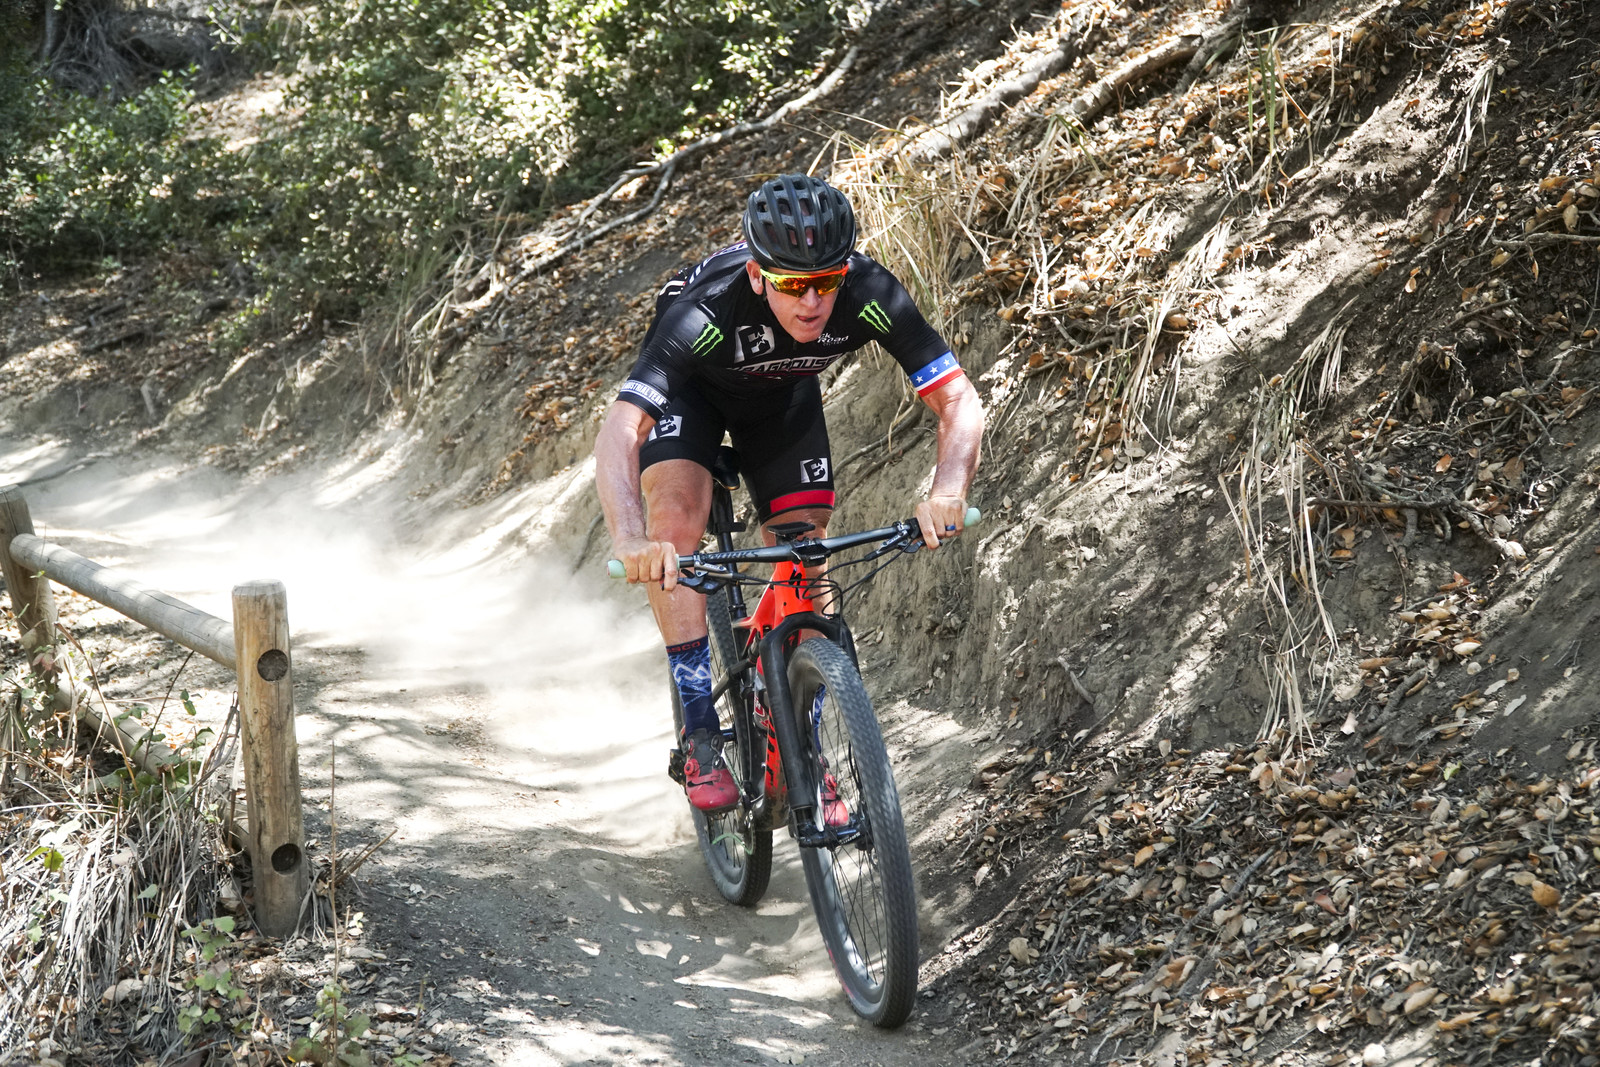 Not only is mountain biking great for your fitness, it helps on the track with line choice, opening up corners, keeping your momentum up, and missing the rough stuff.